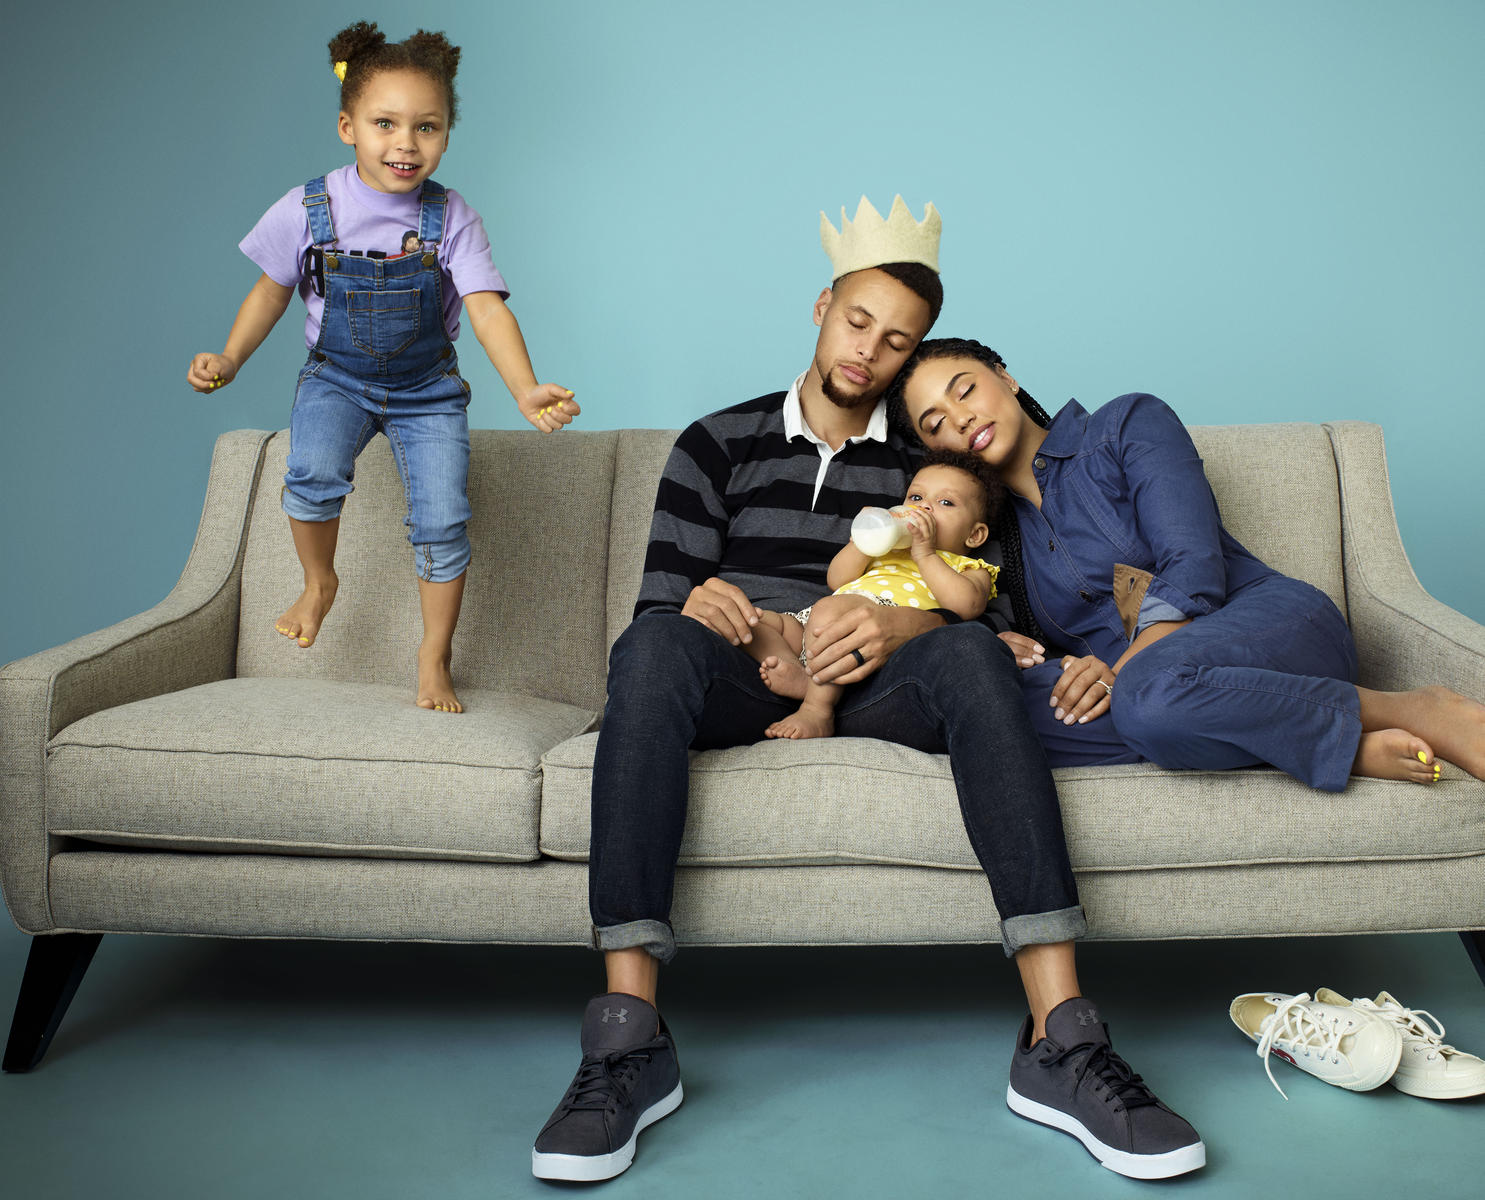 Stephen Curry And Wife Ayesha On Marriage, Kids And Their Matching Tattoos    [Parents]